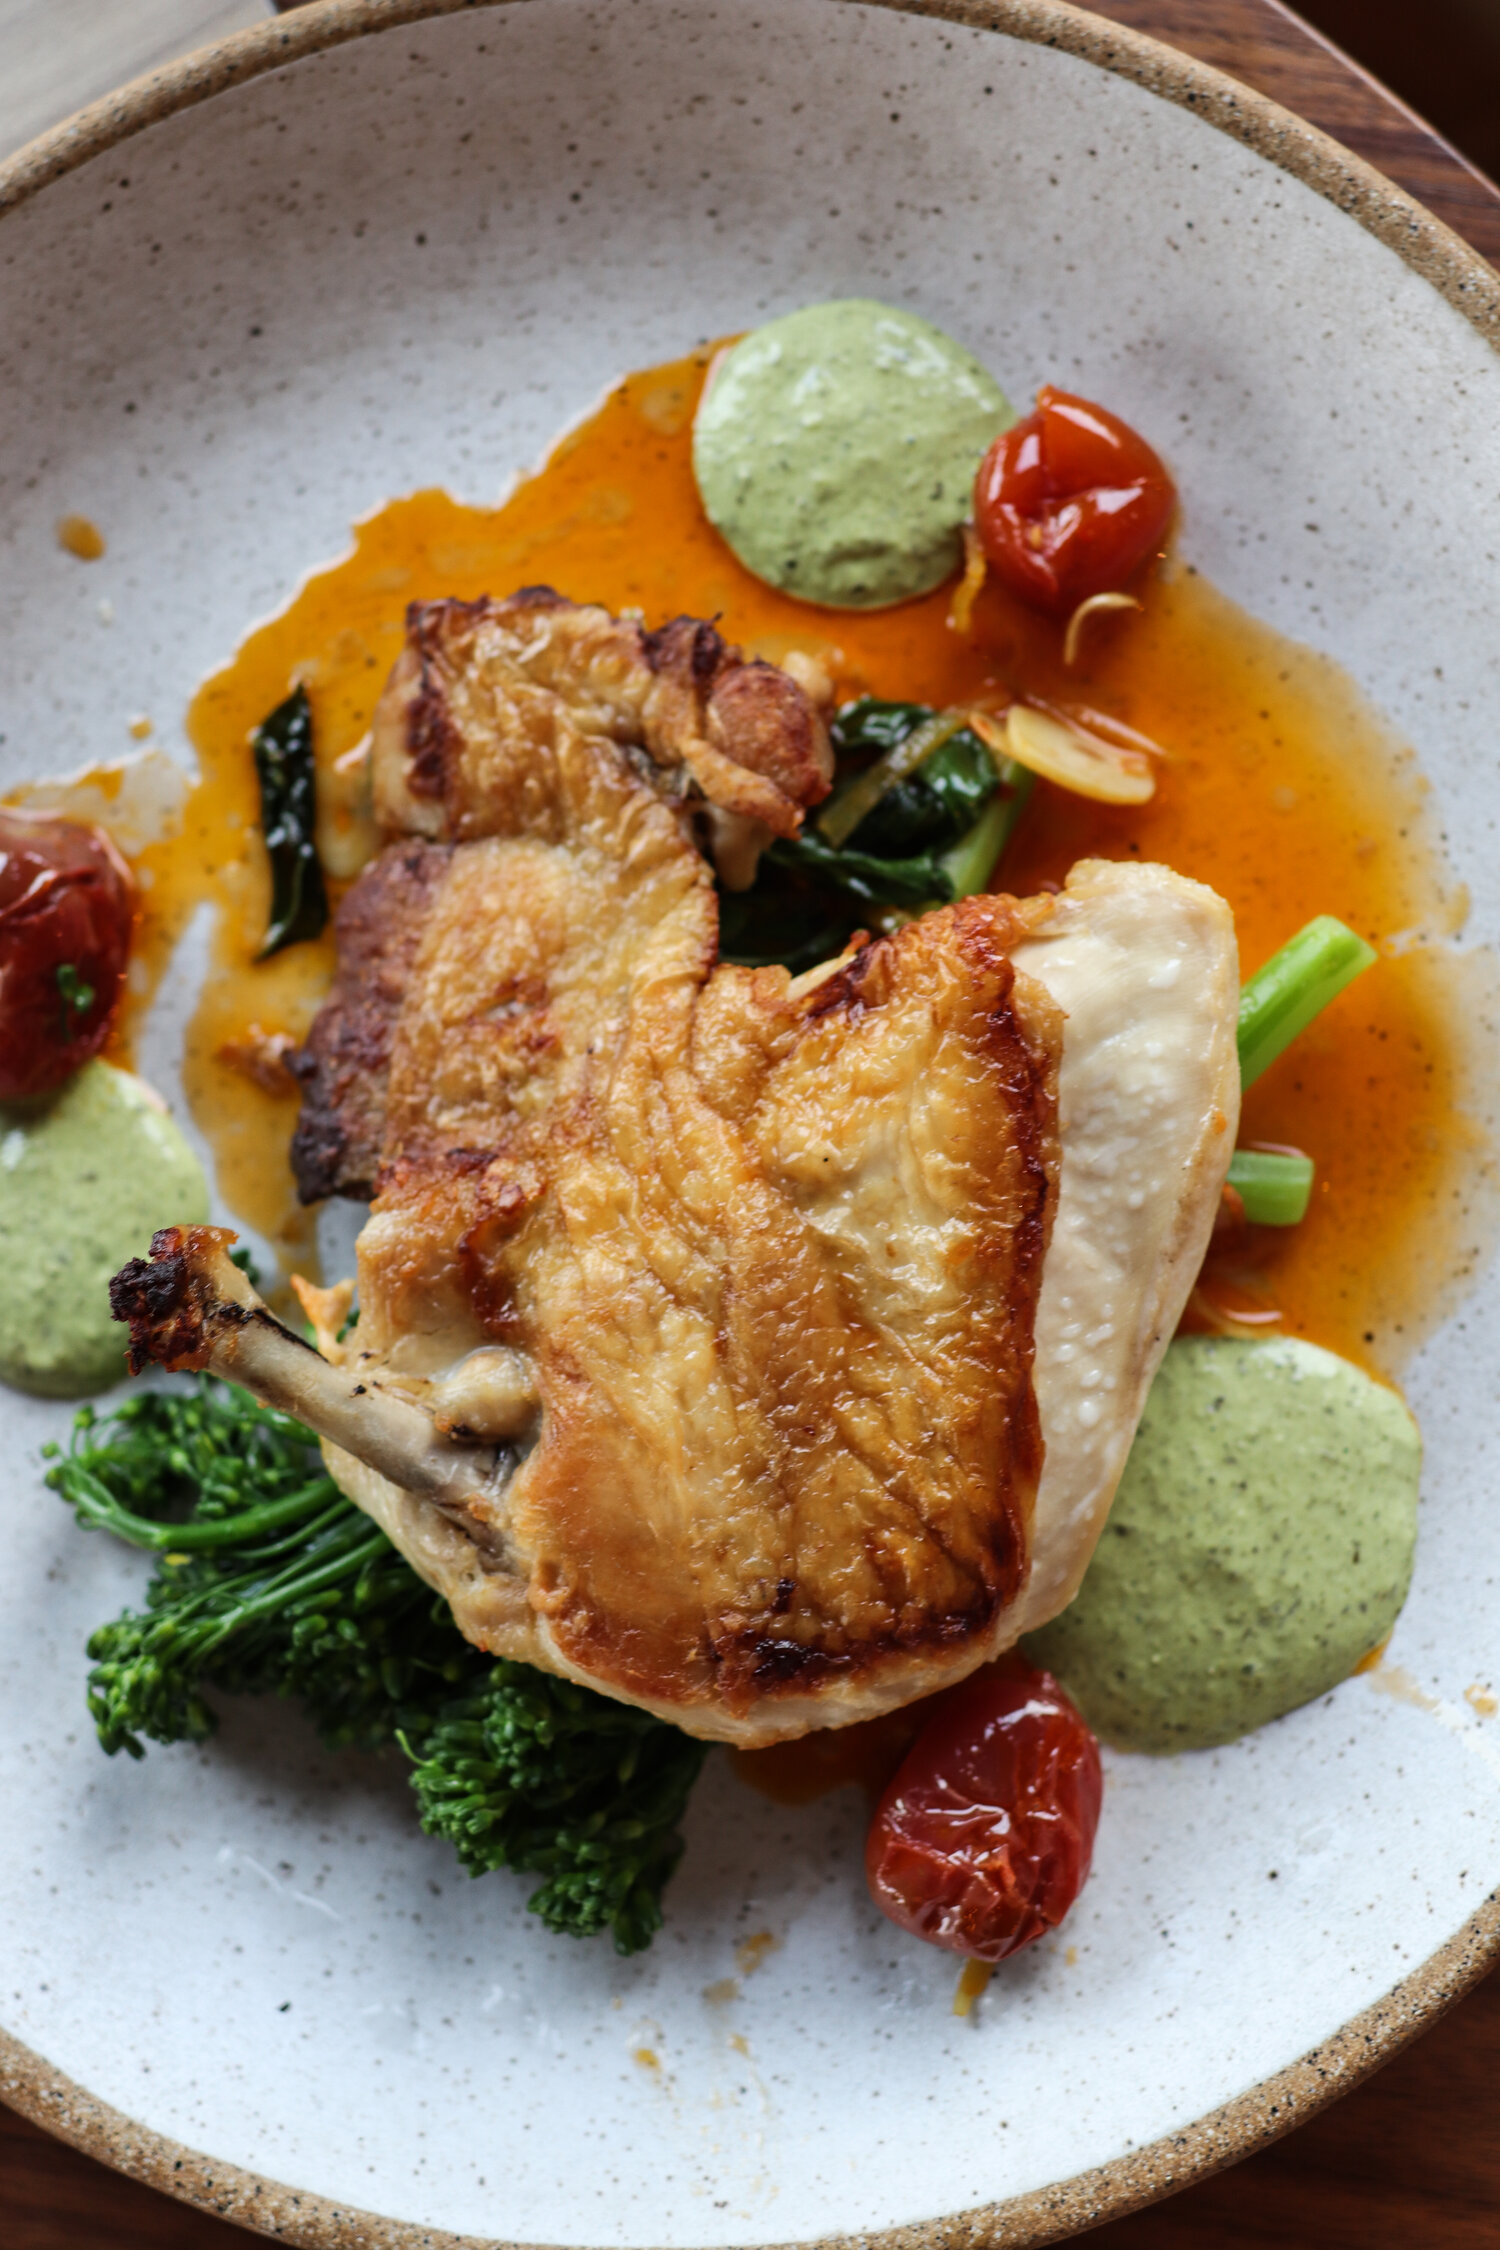 Brick chicken finished in the Marra Forni with blistered tomatoes, broccolini, and creamy salsa verde that played like fresh green goddess dressing.